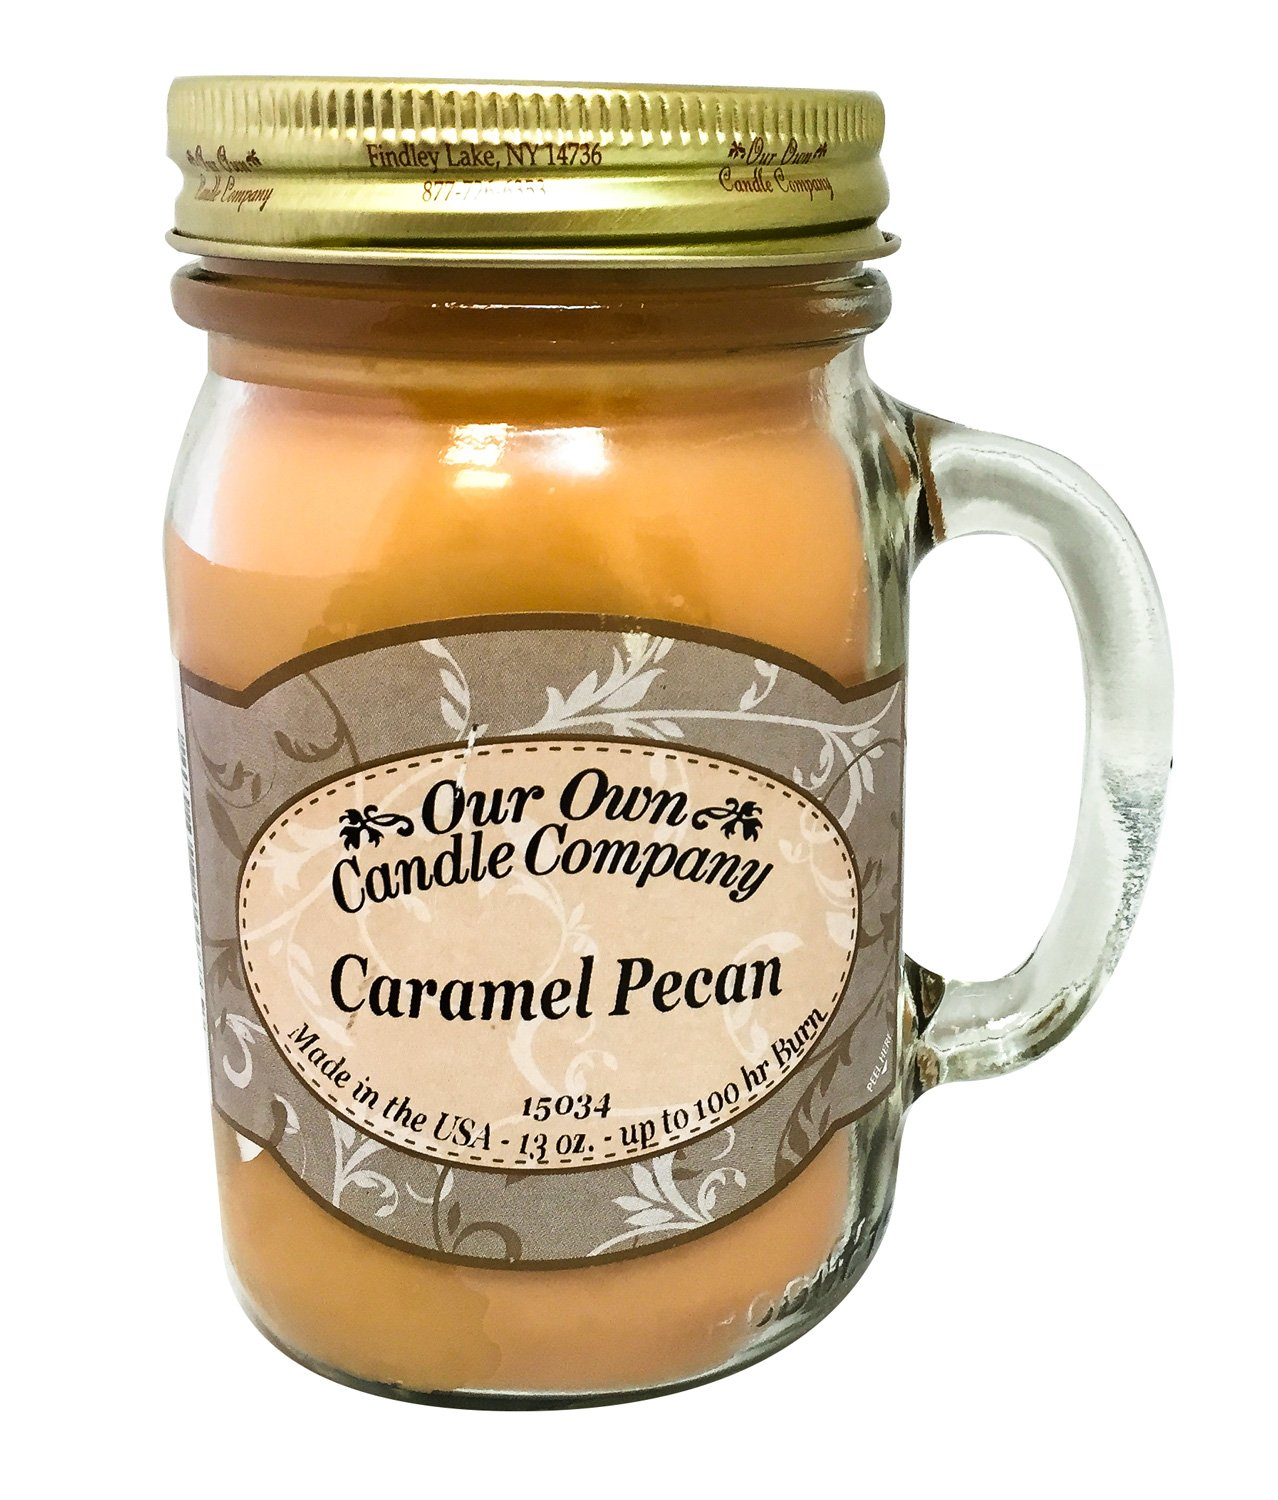 Our Own Candle Company Caramel Pecan Scented 13 Ounce Mason Jar Candle